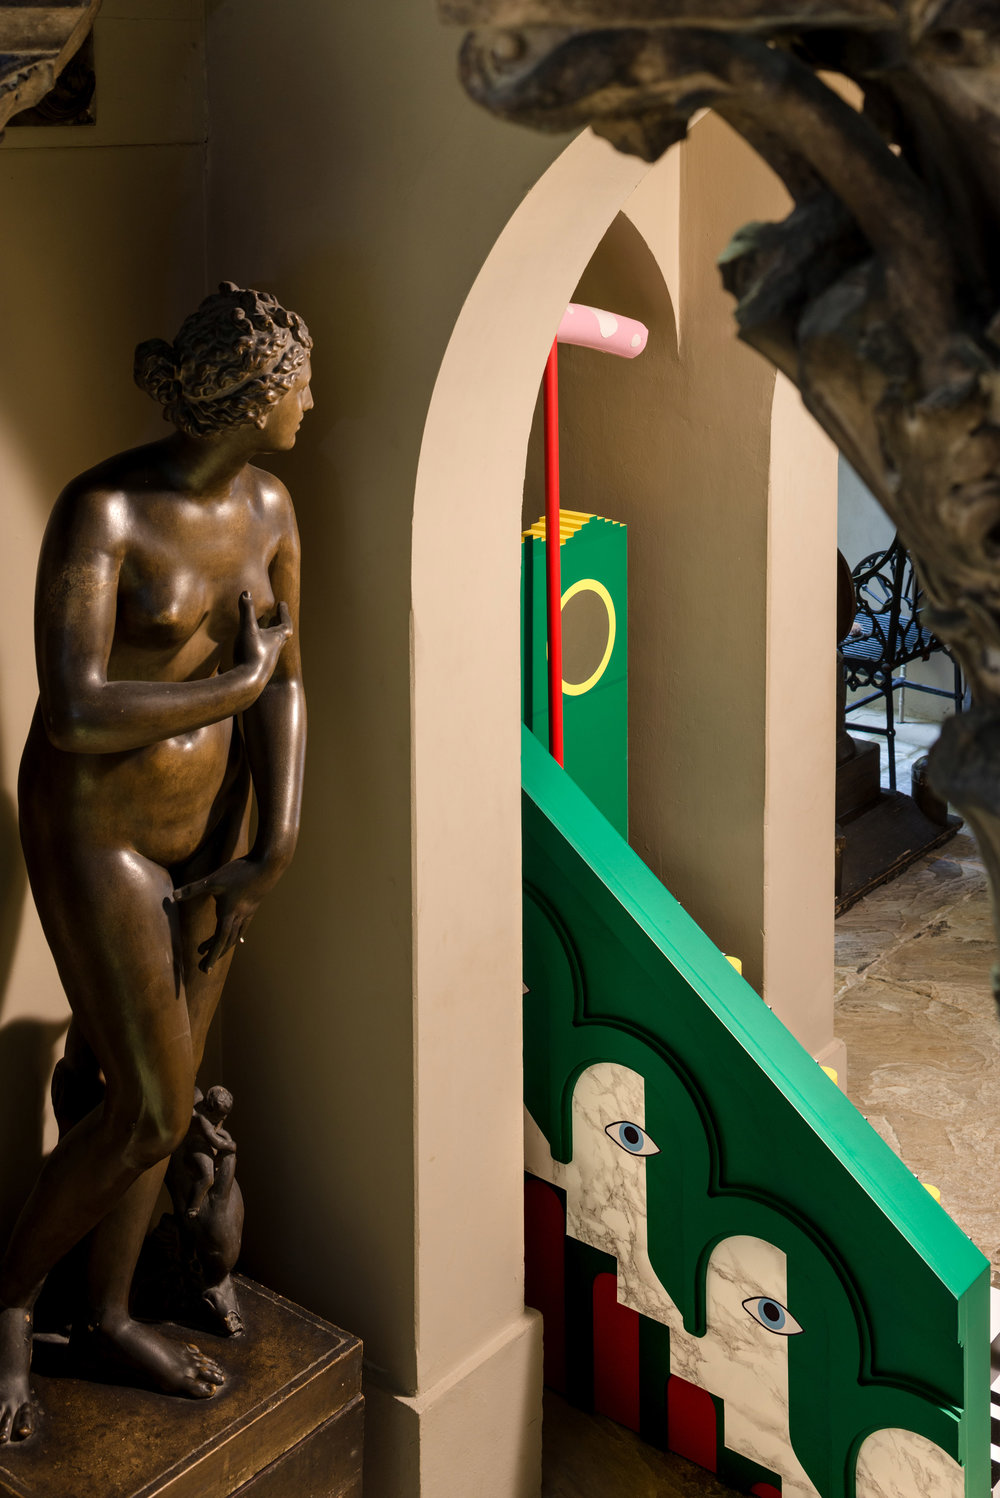 john-soane-architectural-characters-installation-london-uk_dezeen_2364_col_4.jpg